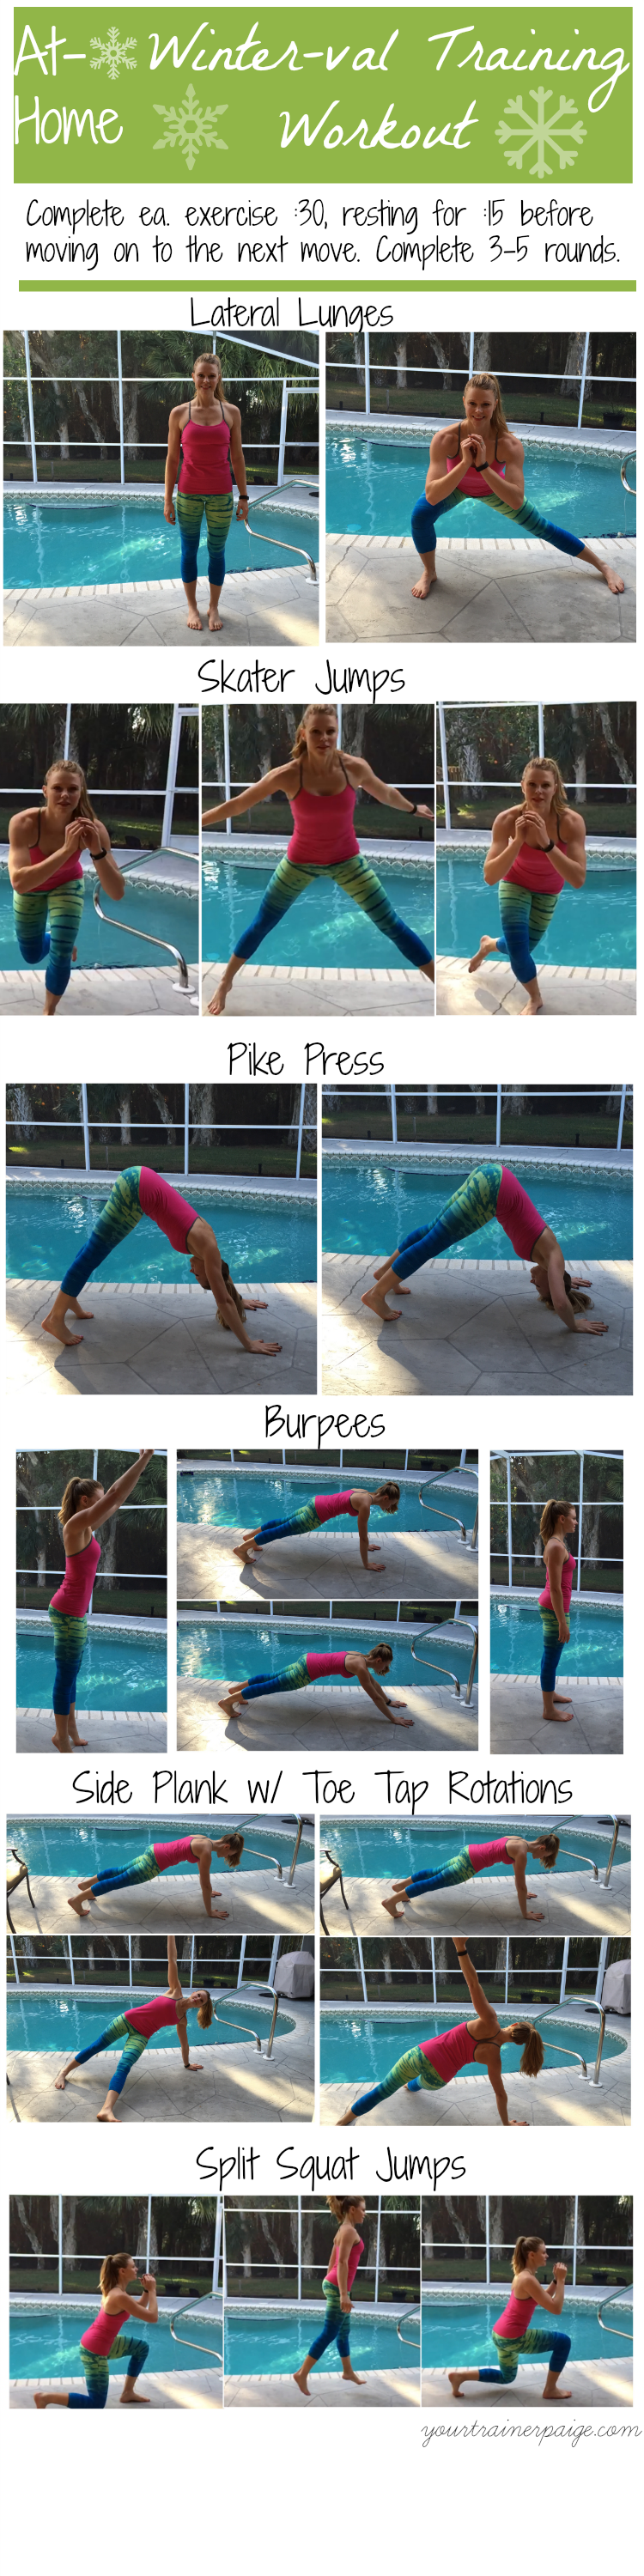 At Home Winter-val Training Workout - Your Trainer Paige